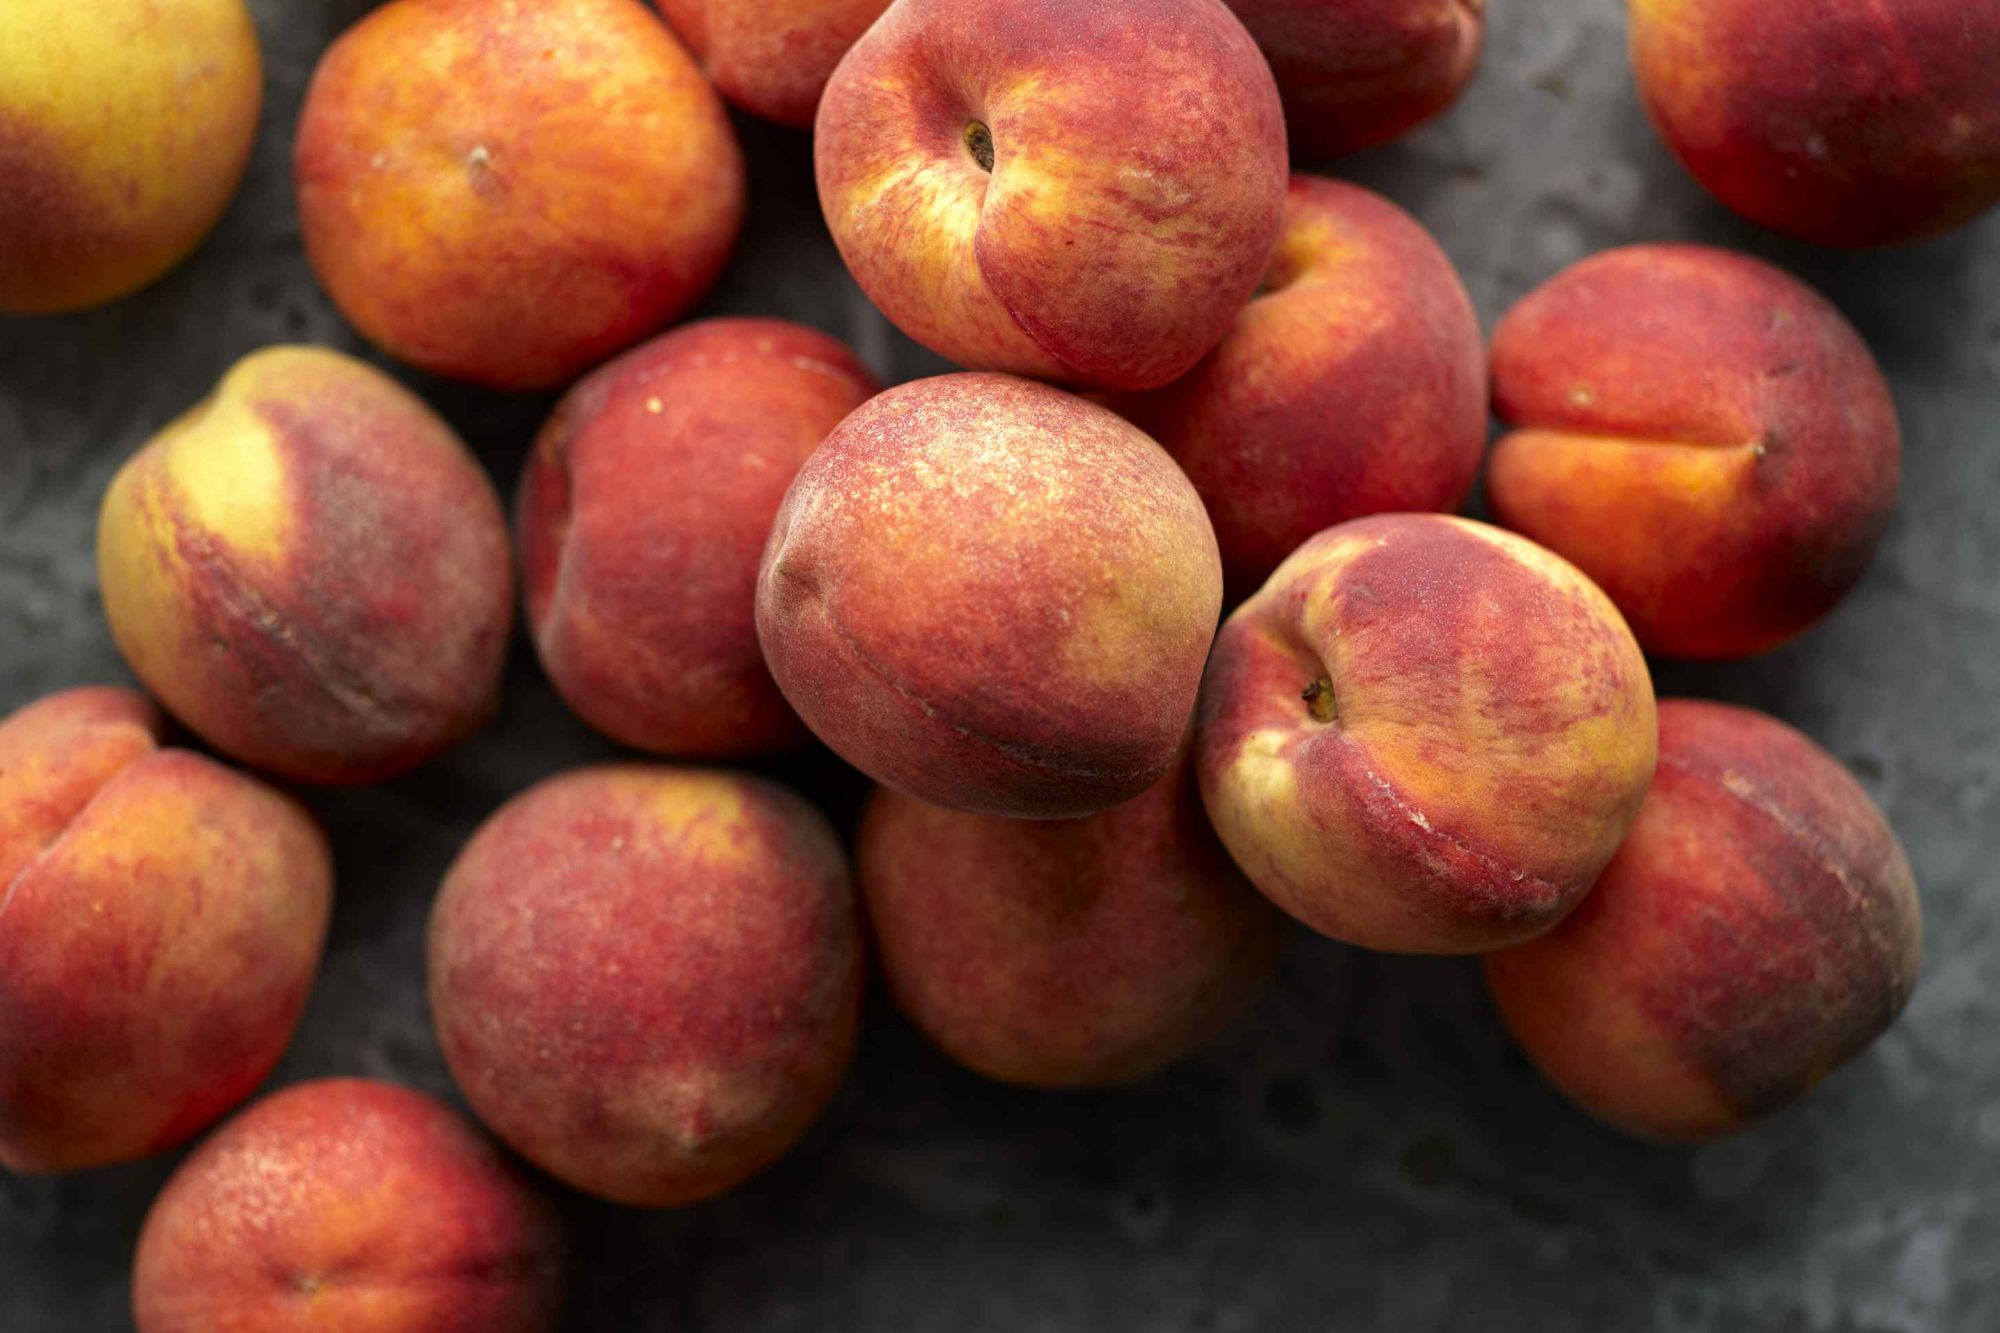 Peaches with slate background